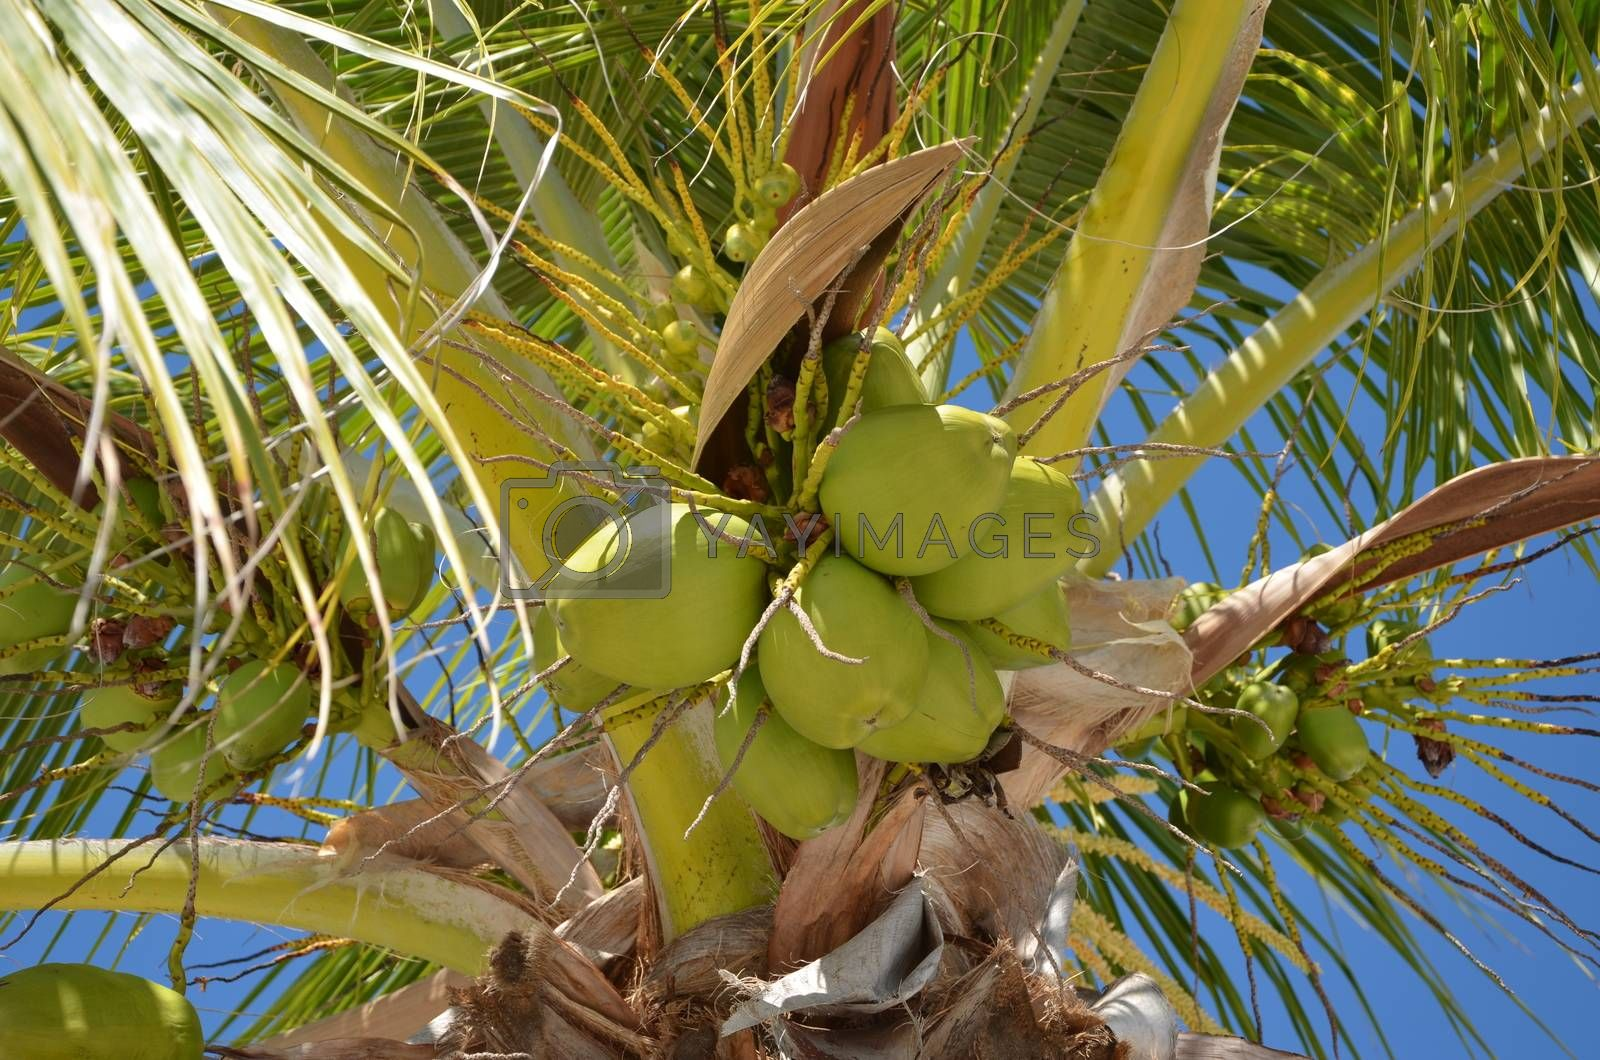 A close-up view of a palm tree with coconuts hanging from the branches